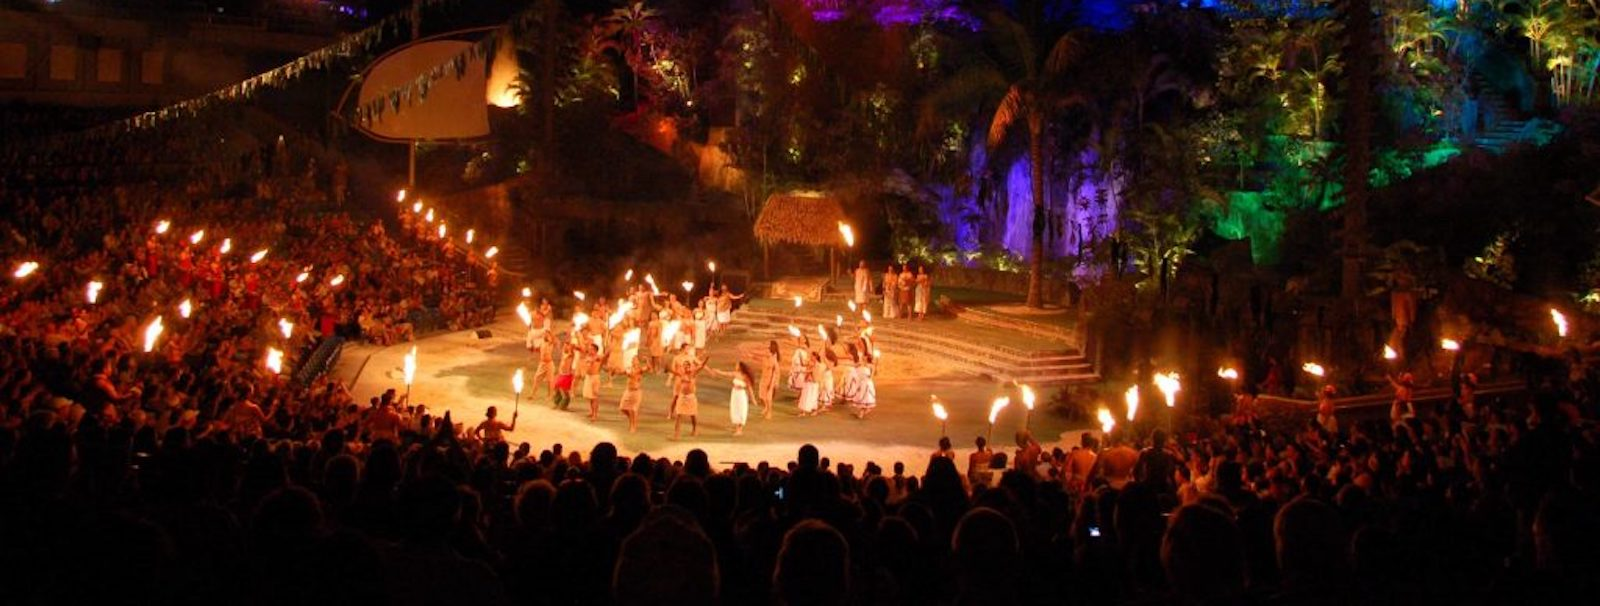 Top 4 Reasons to Book One of Our Polynesian Cultural Center Packages